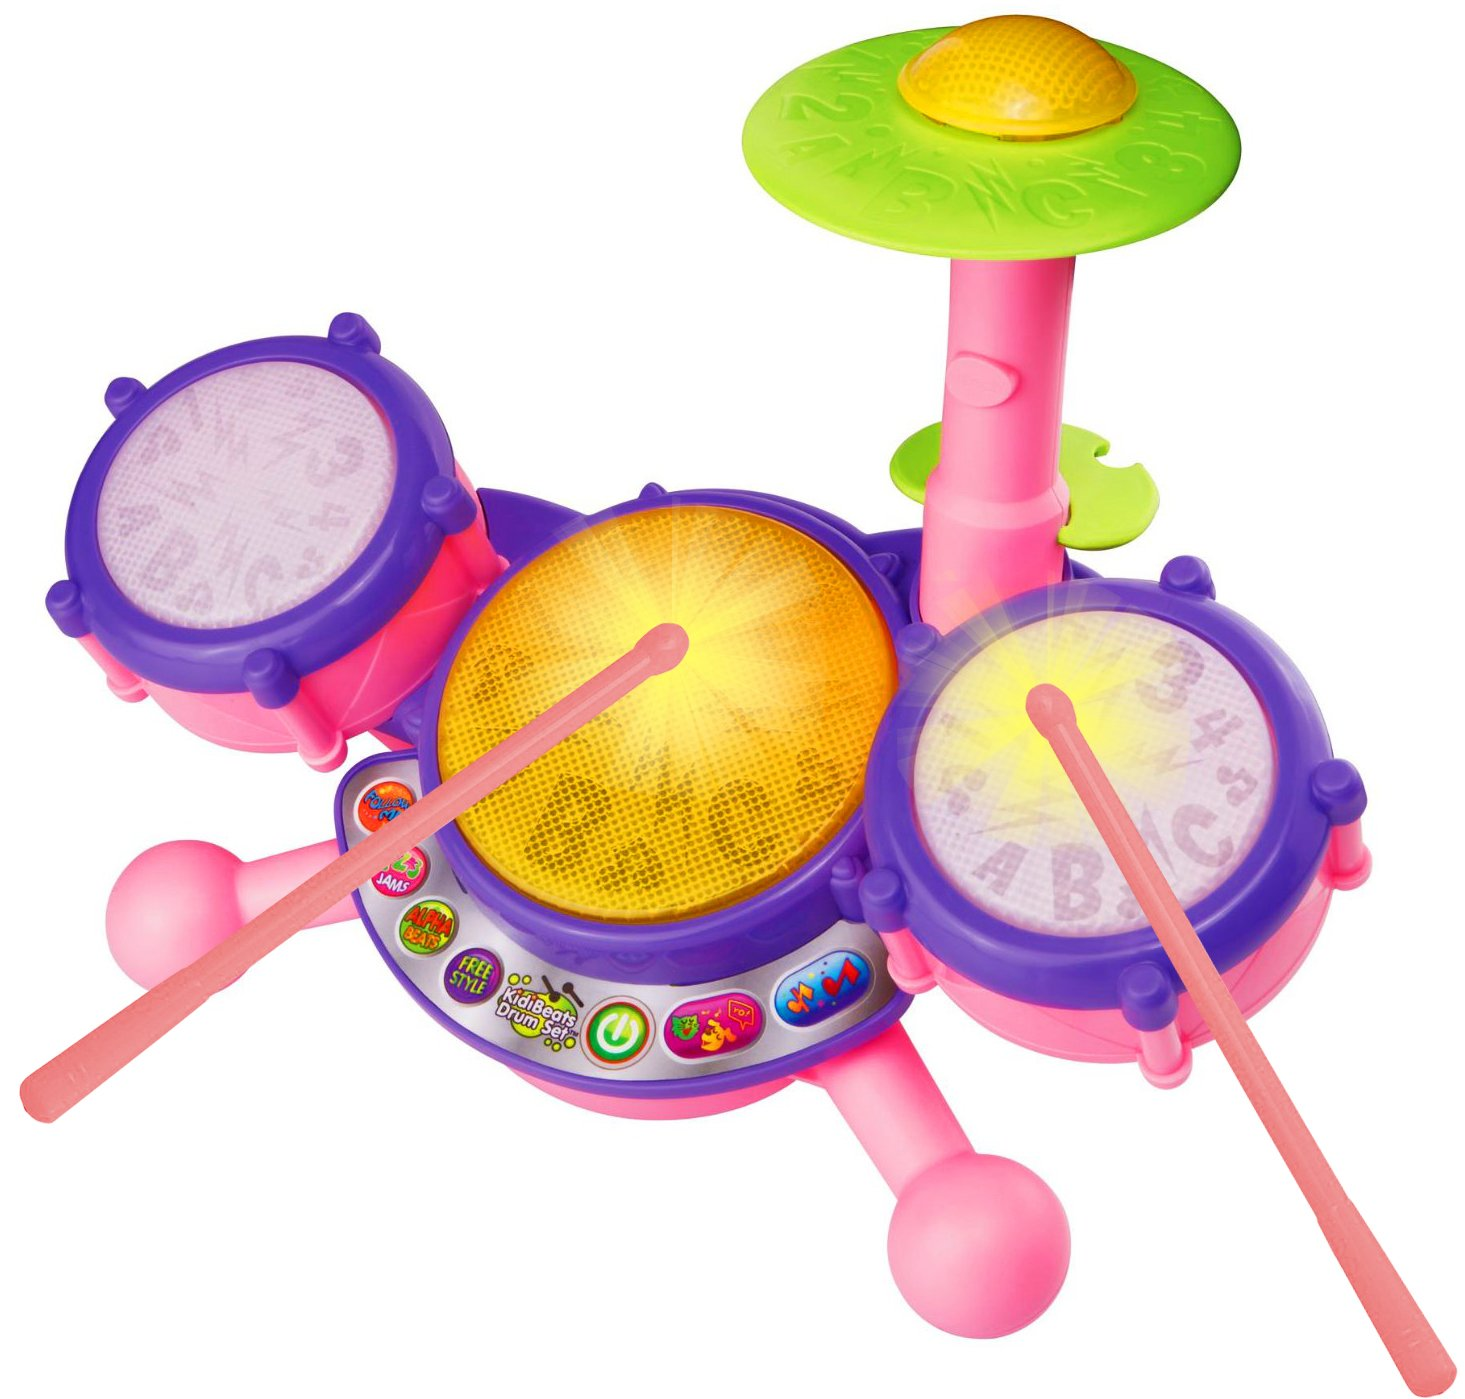 VTech KidiBeats Drum Set - Pink - Online Exclusive